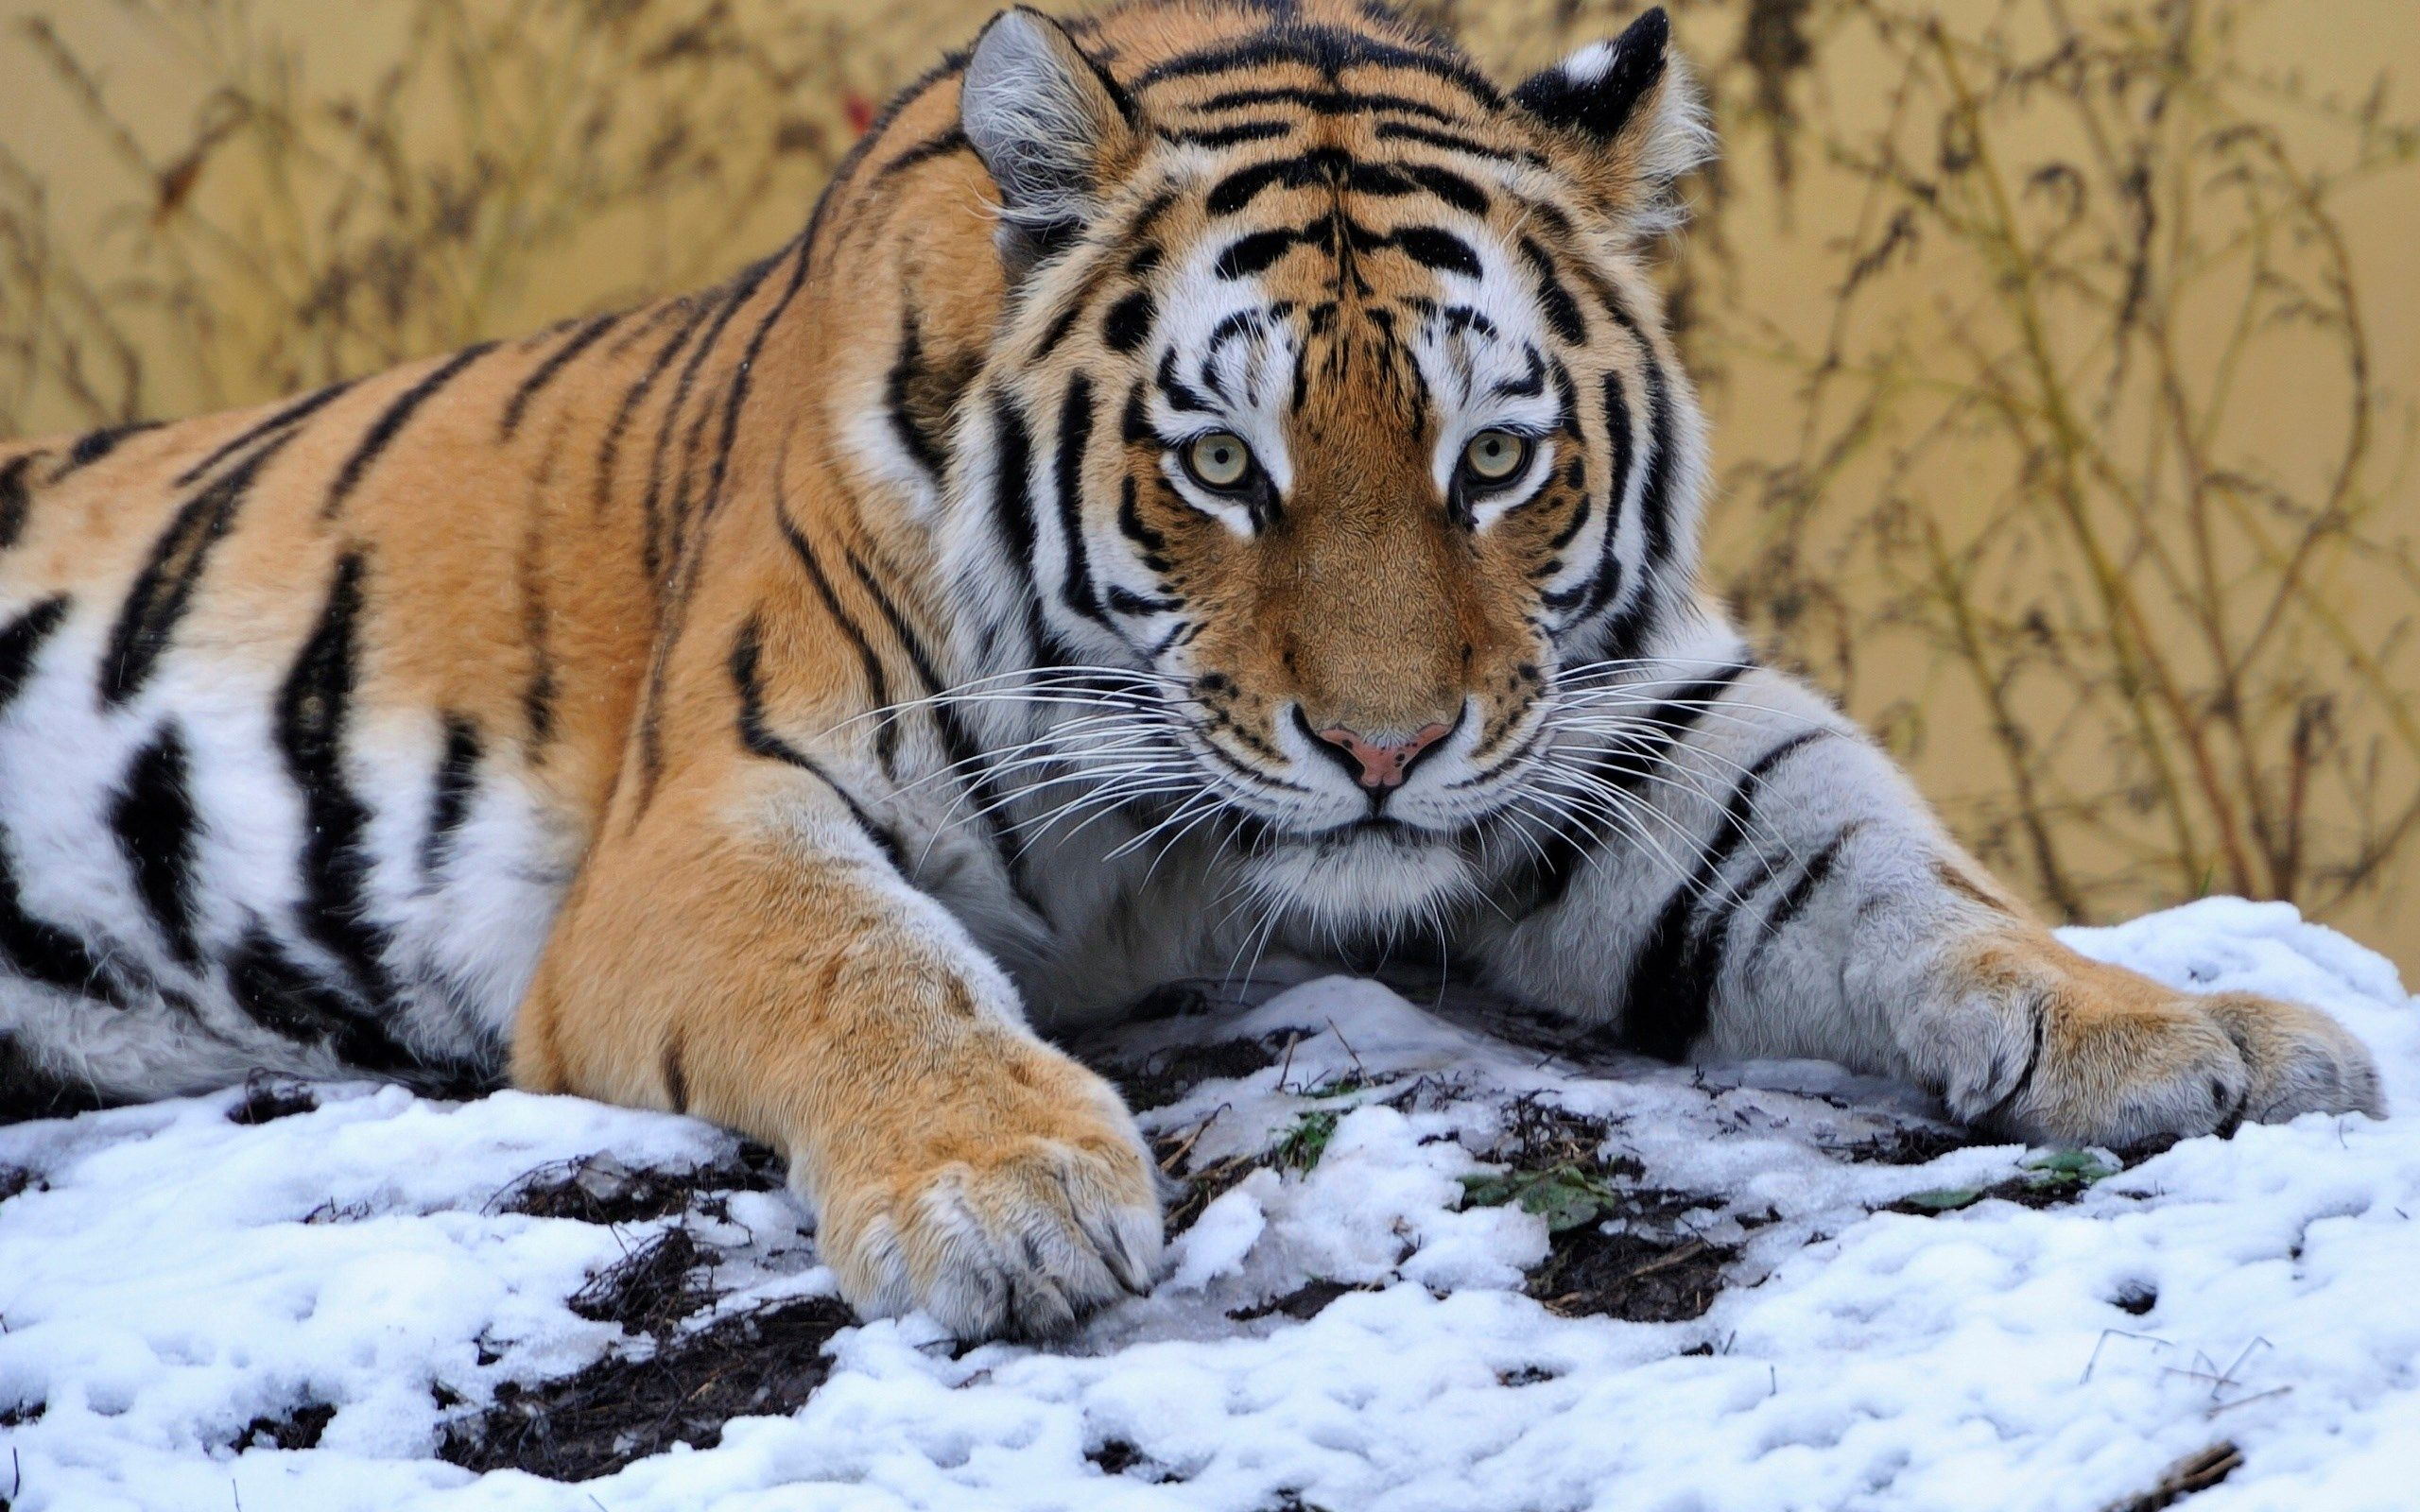 Beautiful Wallpaper High Resolution Tiger - 834ece261c95cc7f152fbf22c7152657  HD_346528.jpg